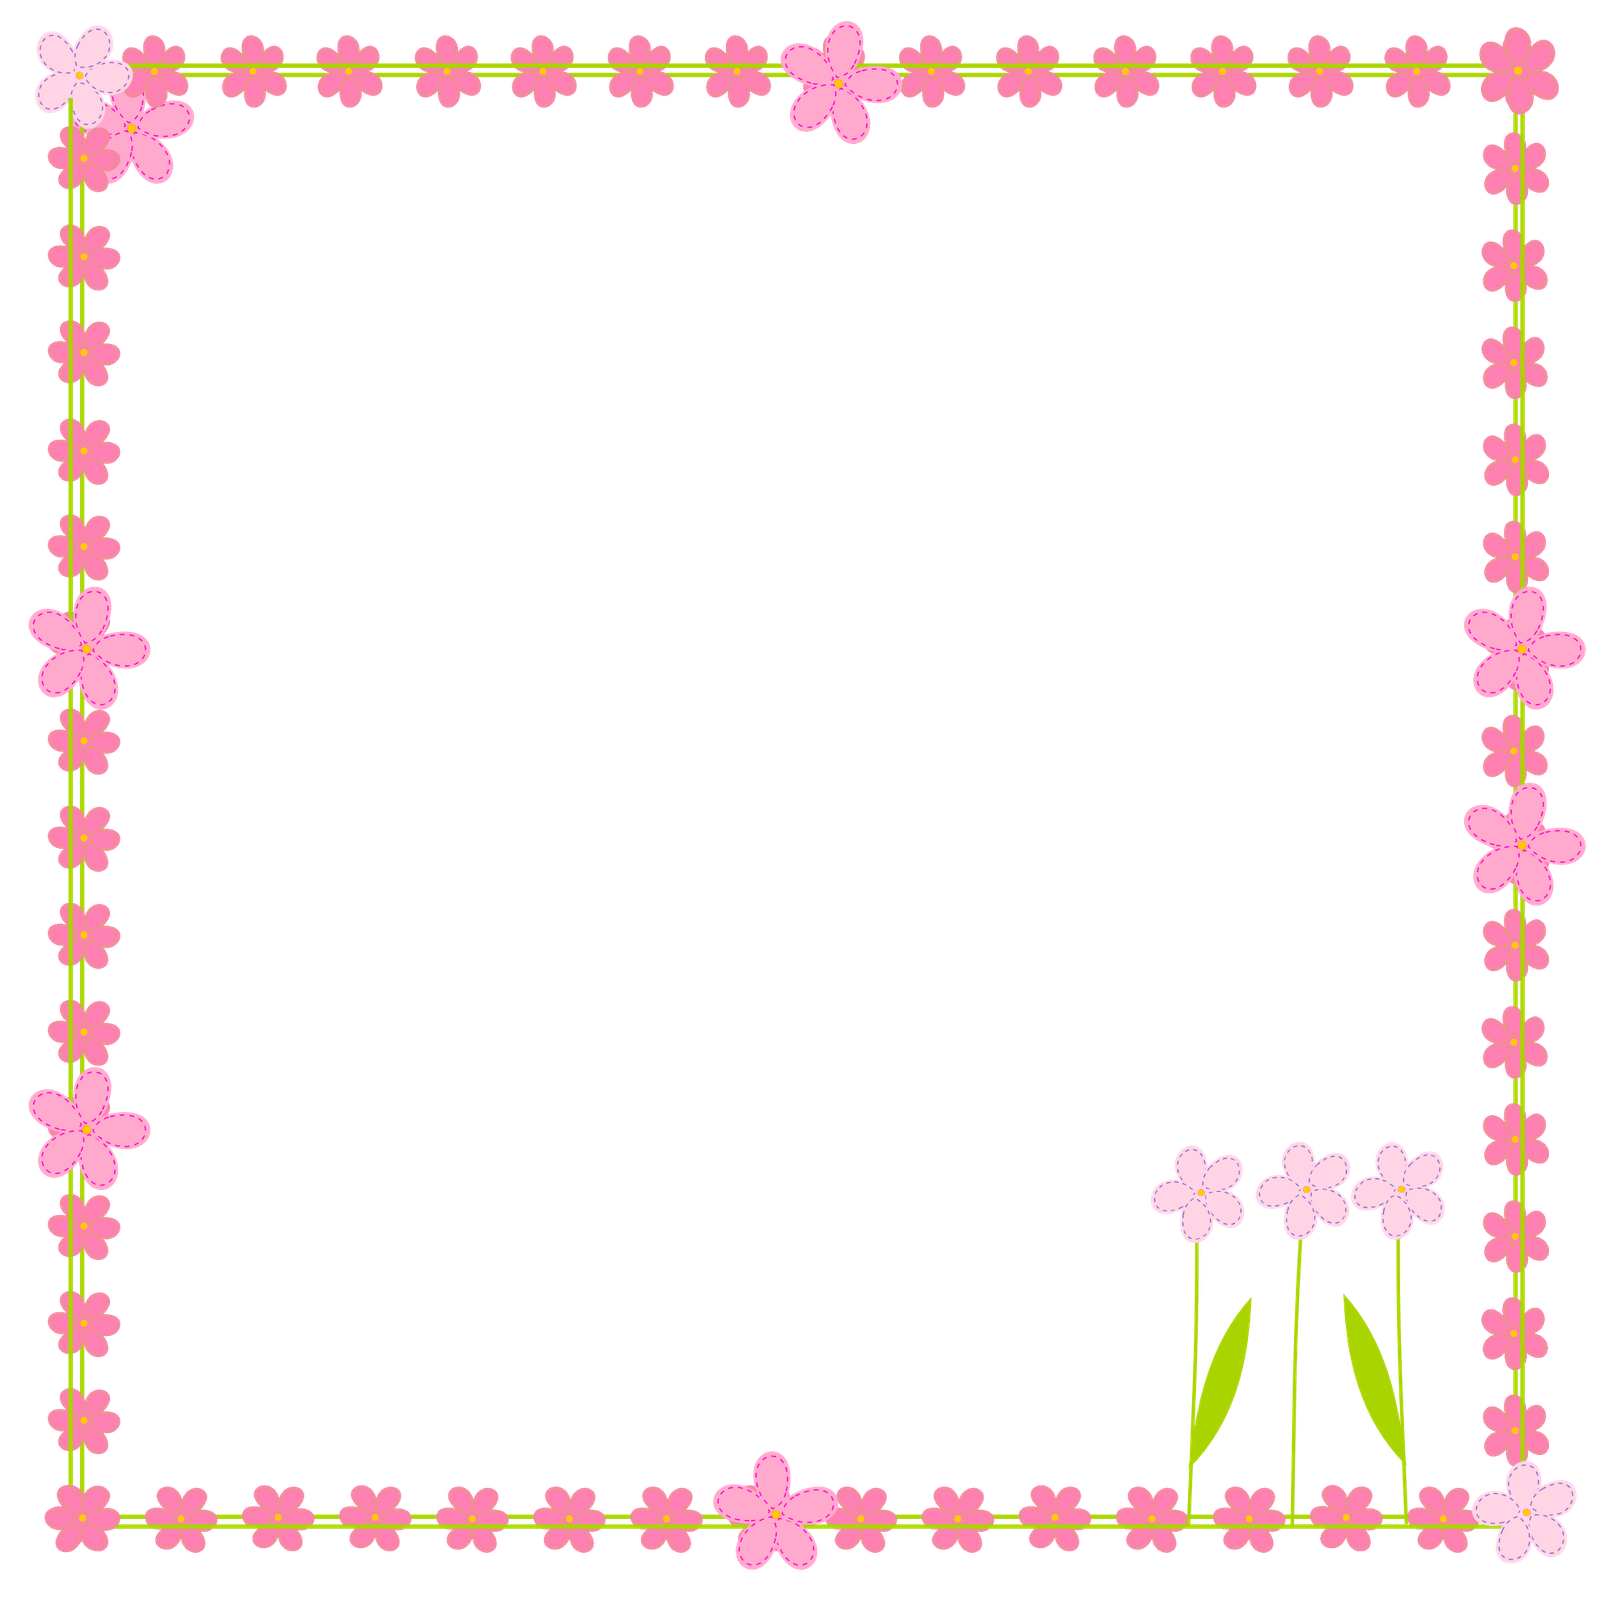 free digital flower border scrapbooking elements Clipart Rahmen freebies